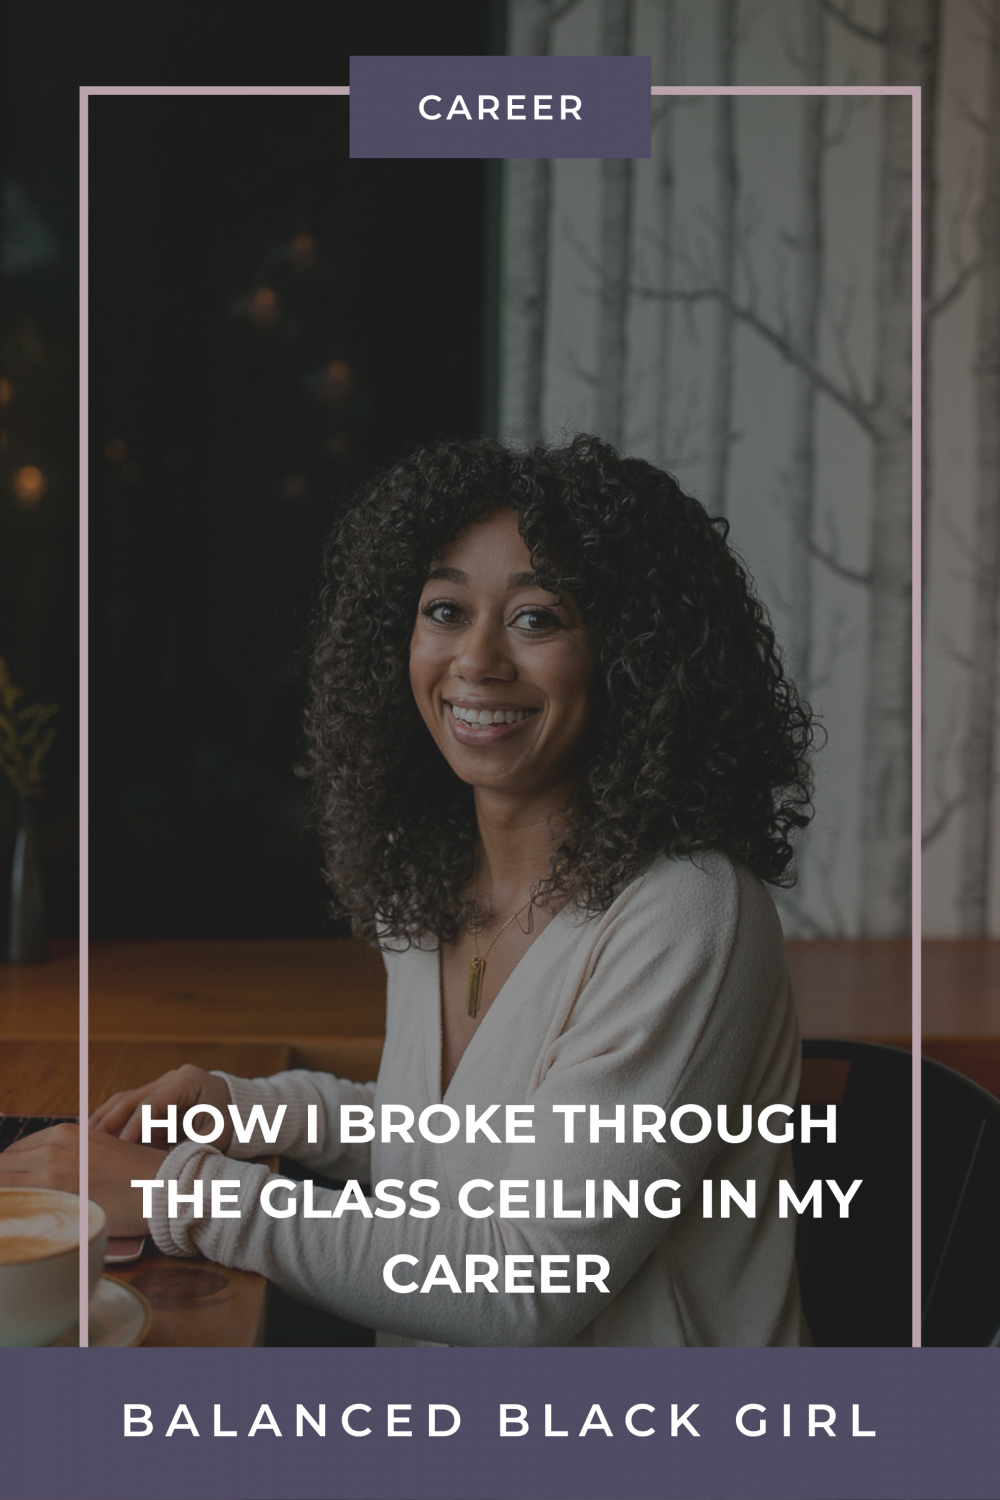 Glass Ceiling: How I Broke Through In My Career